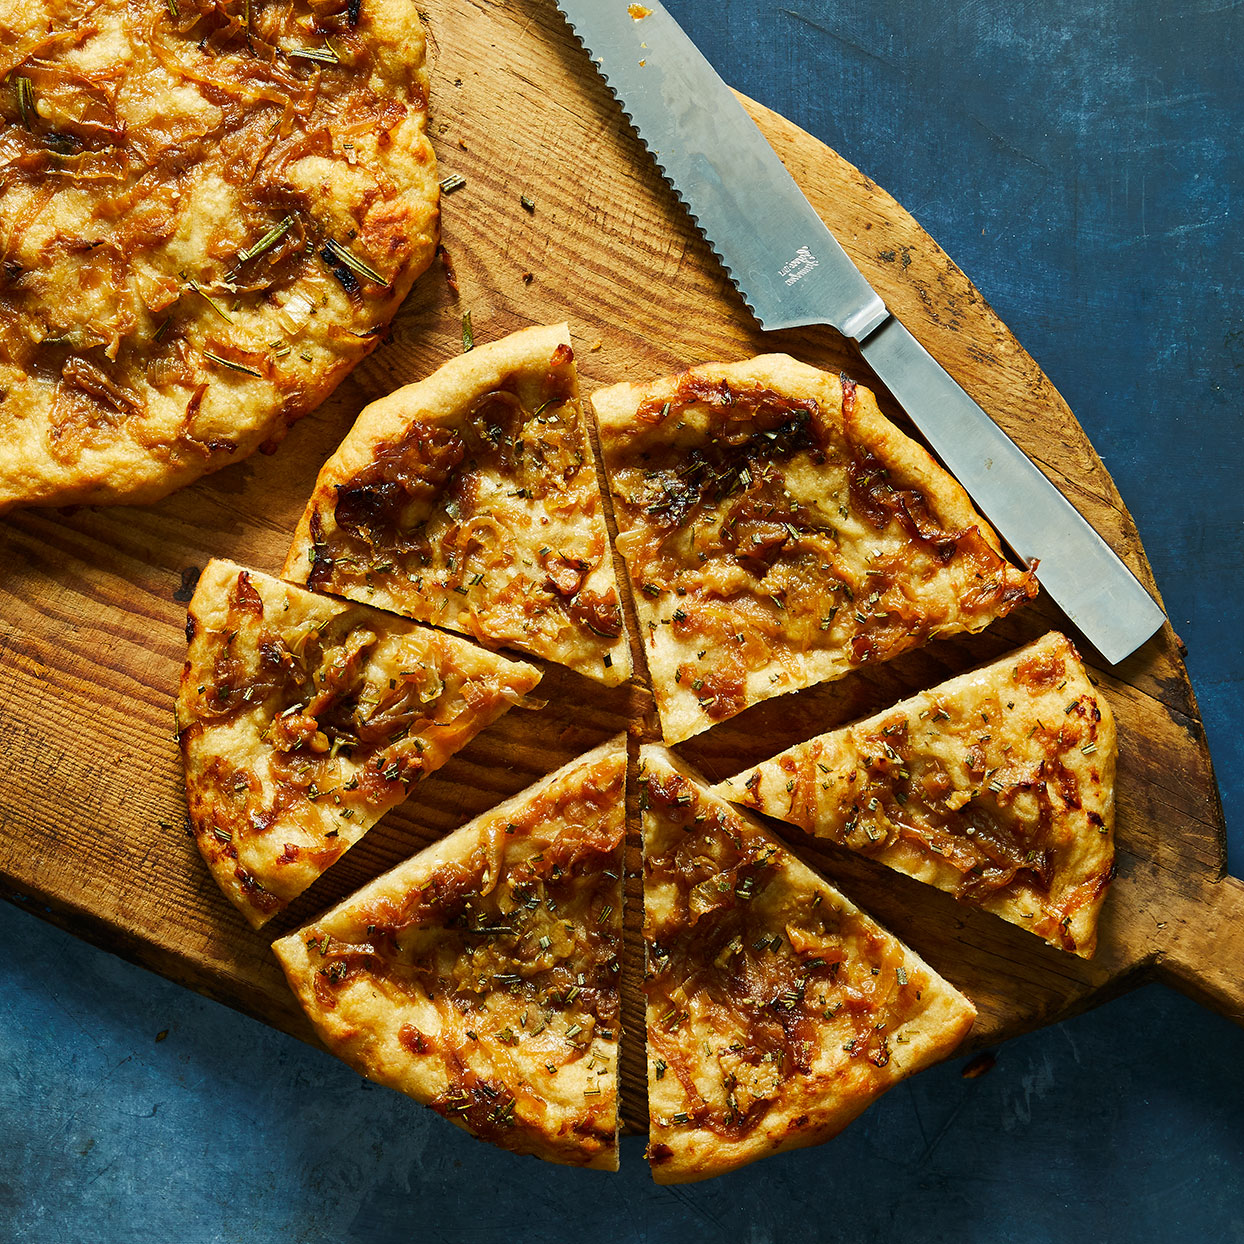 Roasted Galic and Caramelized Onion Flatbread